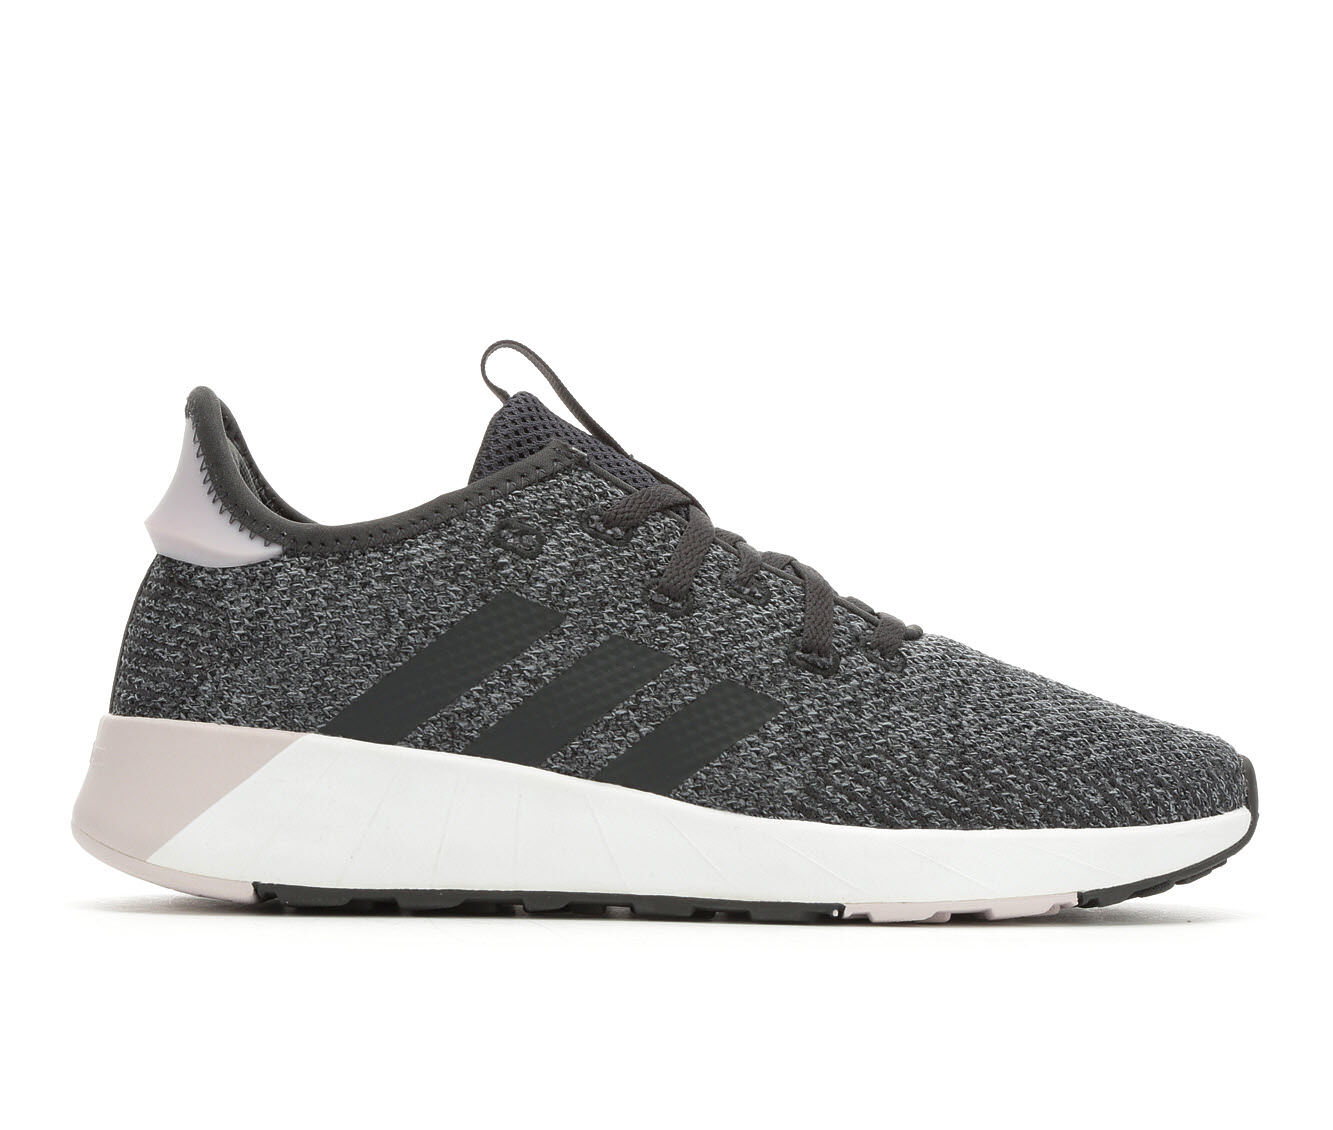 new arrivals Women's Adidas Questar X Sneakers Blk/Carbon/Ice